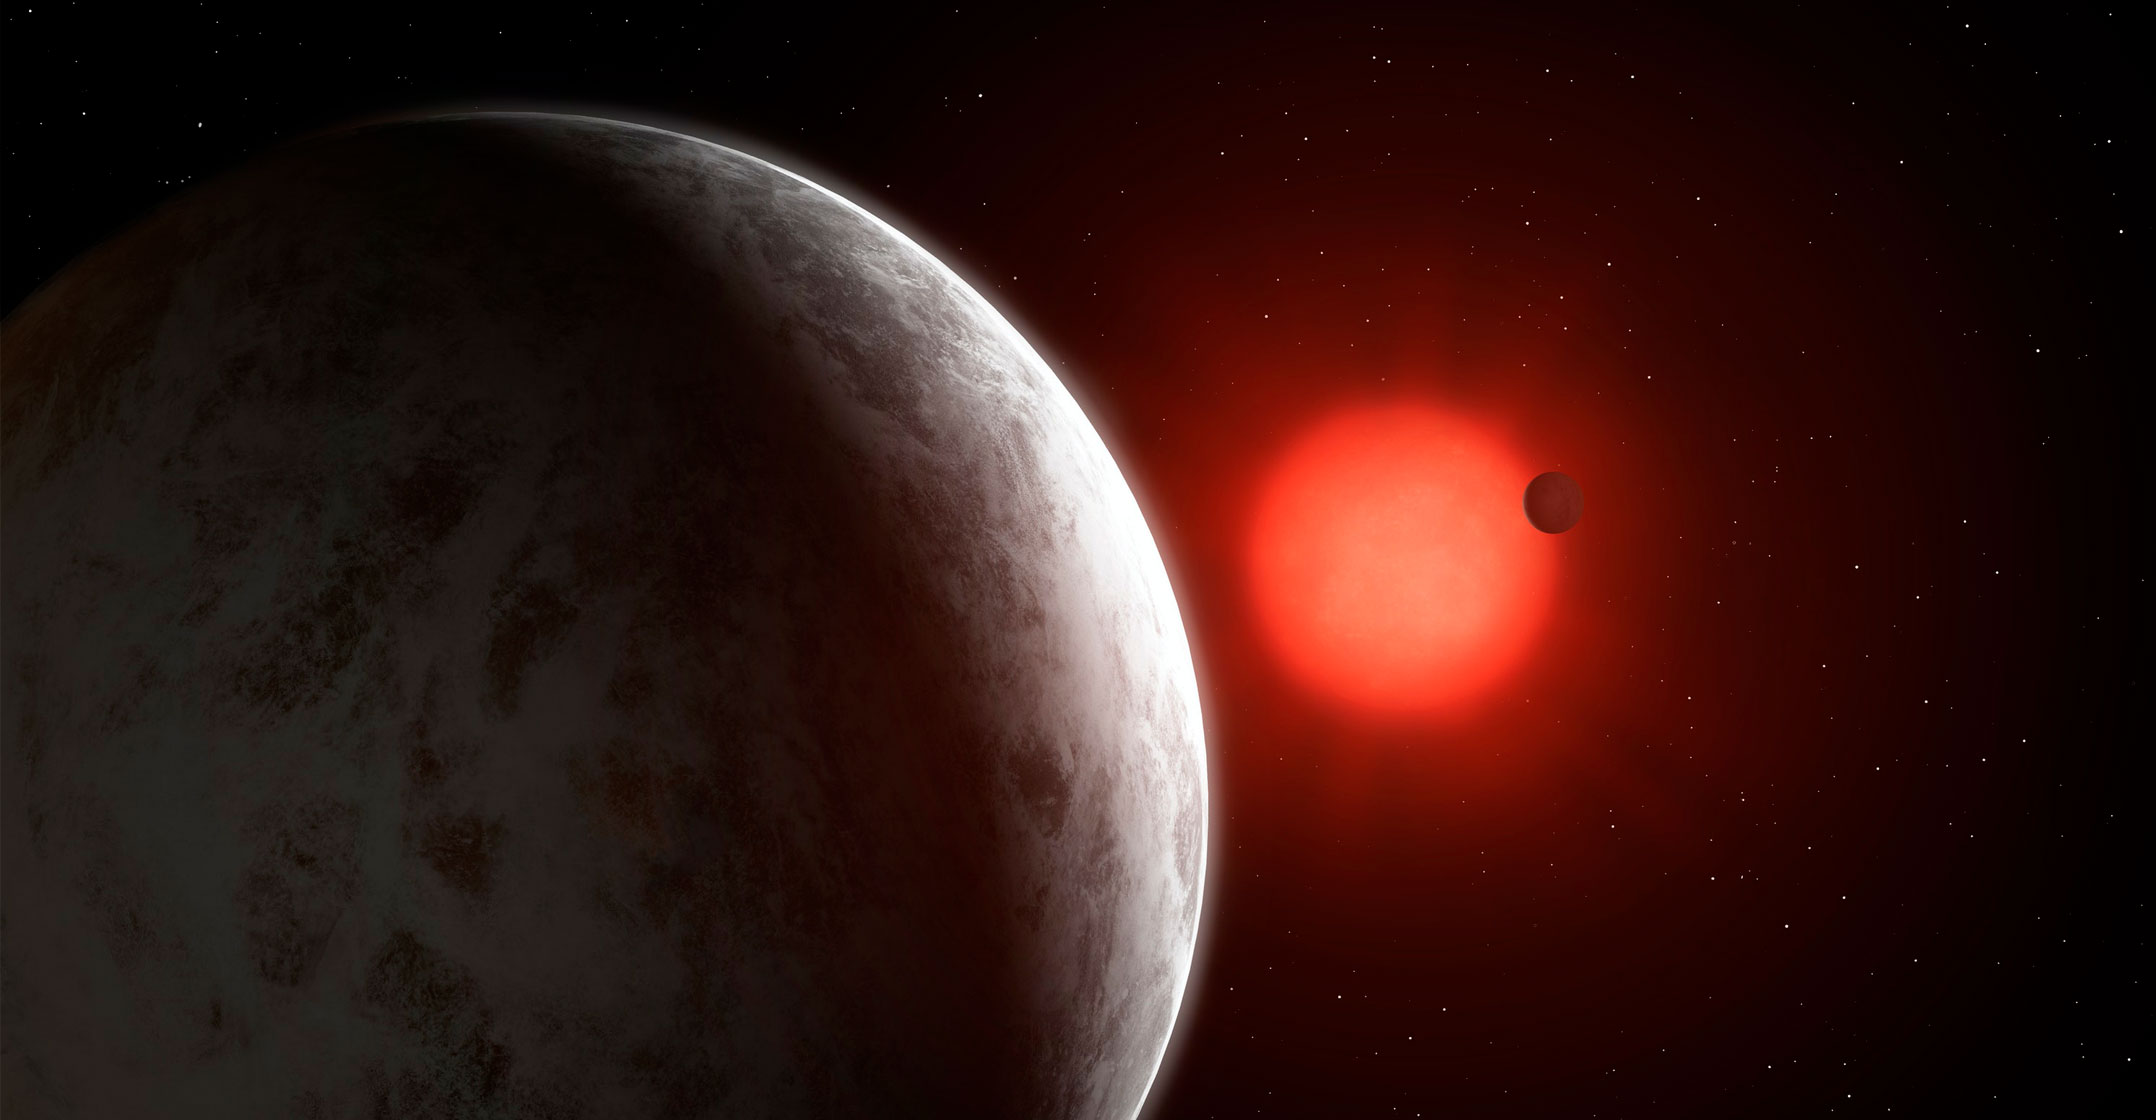 Two 'super-Earths' discovered orbiting a nearby star - TechCentral